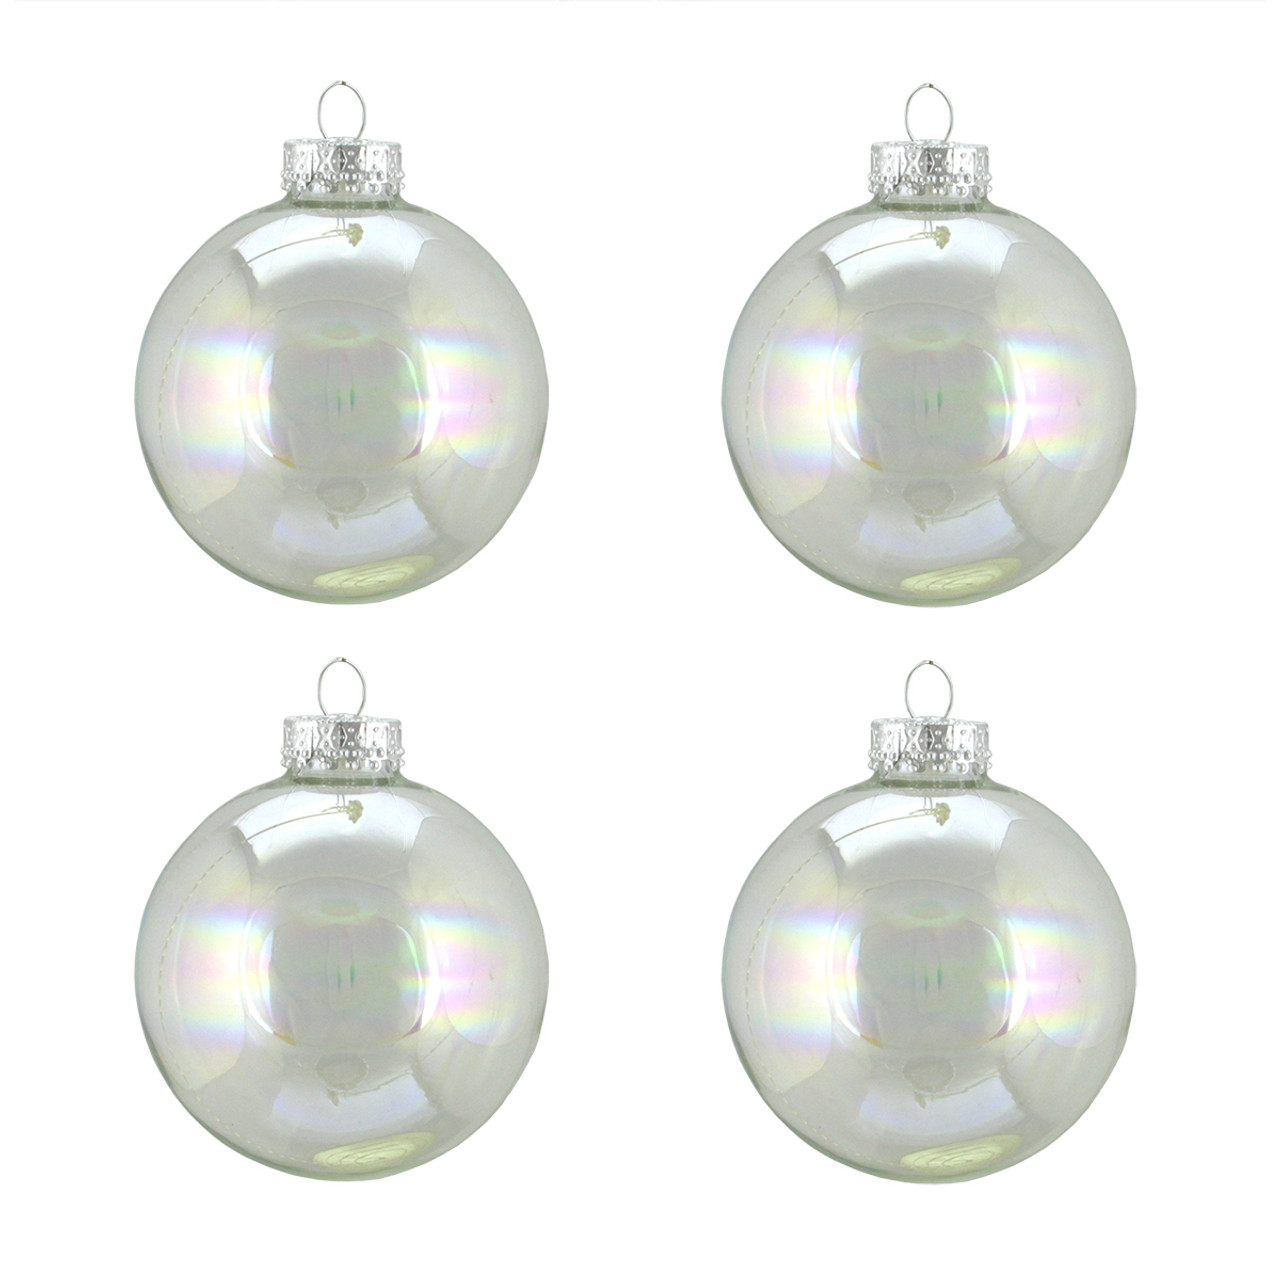 Picturesque Clear Iridescent Glass Ball Ornaments Clear Iridescent Glass Ball Ornaments Clear Ornaments Wholesale Ve On Craftschrisorbrchrml decor Clear Christmas Ornaments